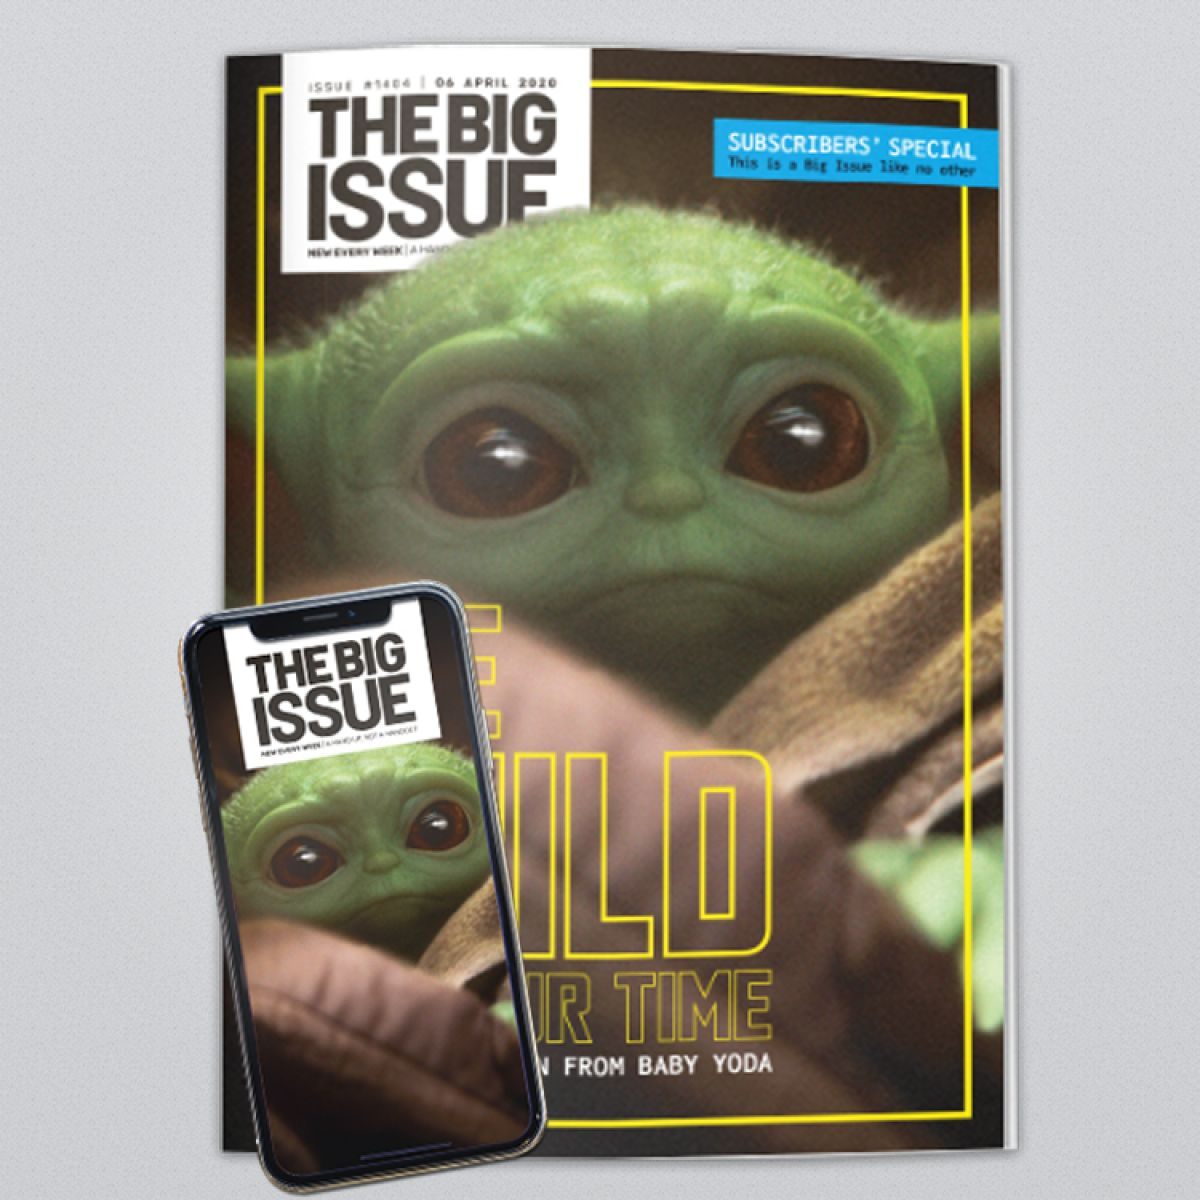 Issue 1404 - Baby Yoda | The Big Issue